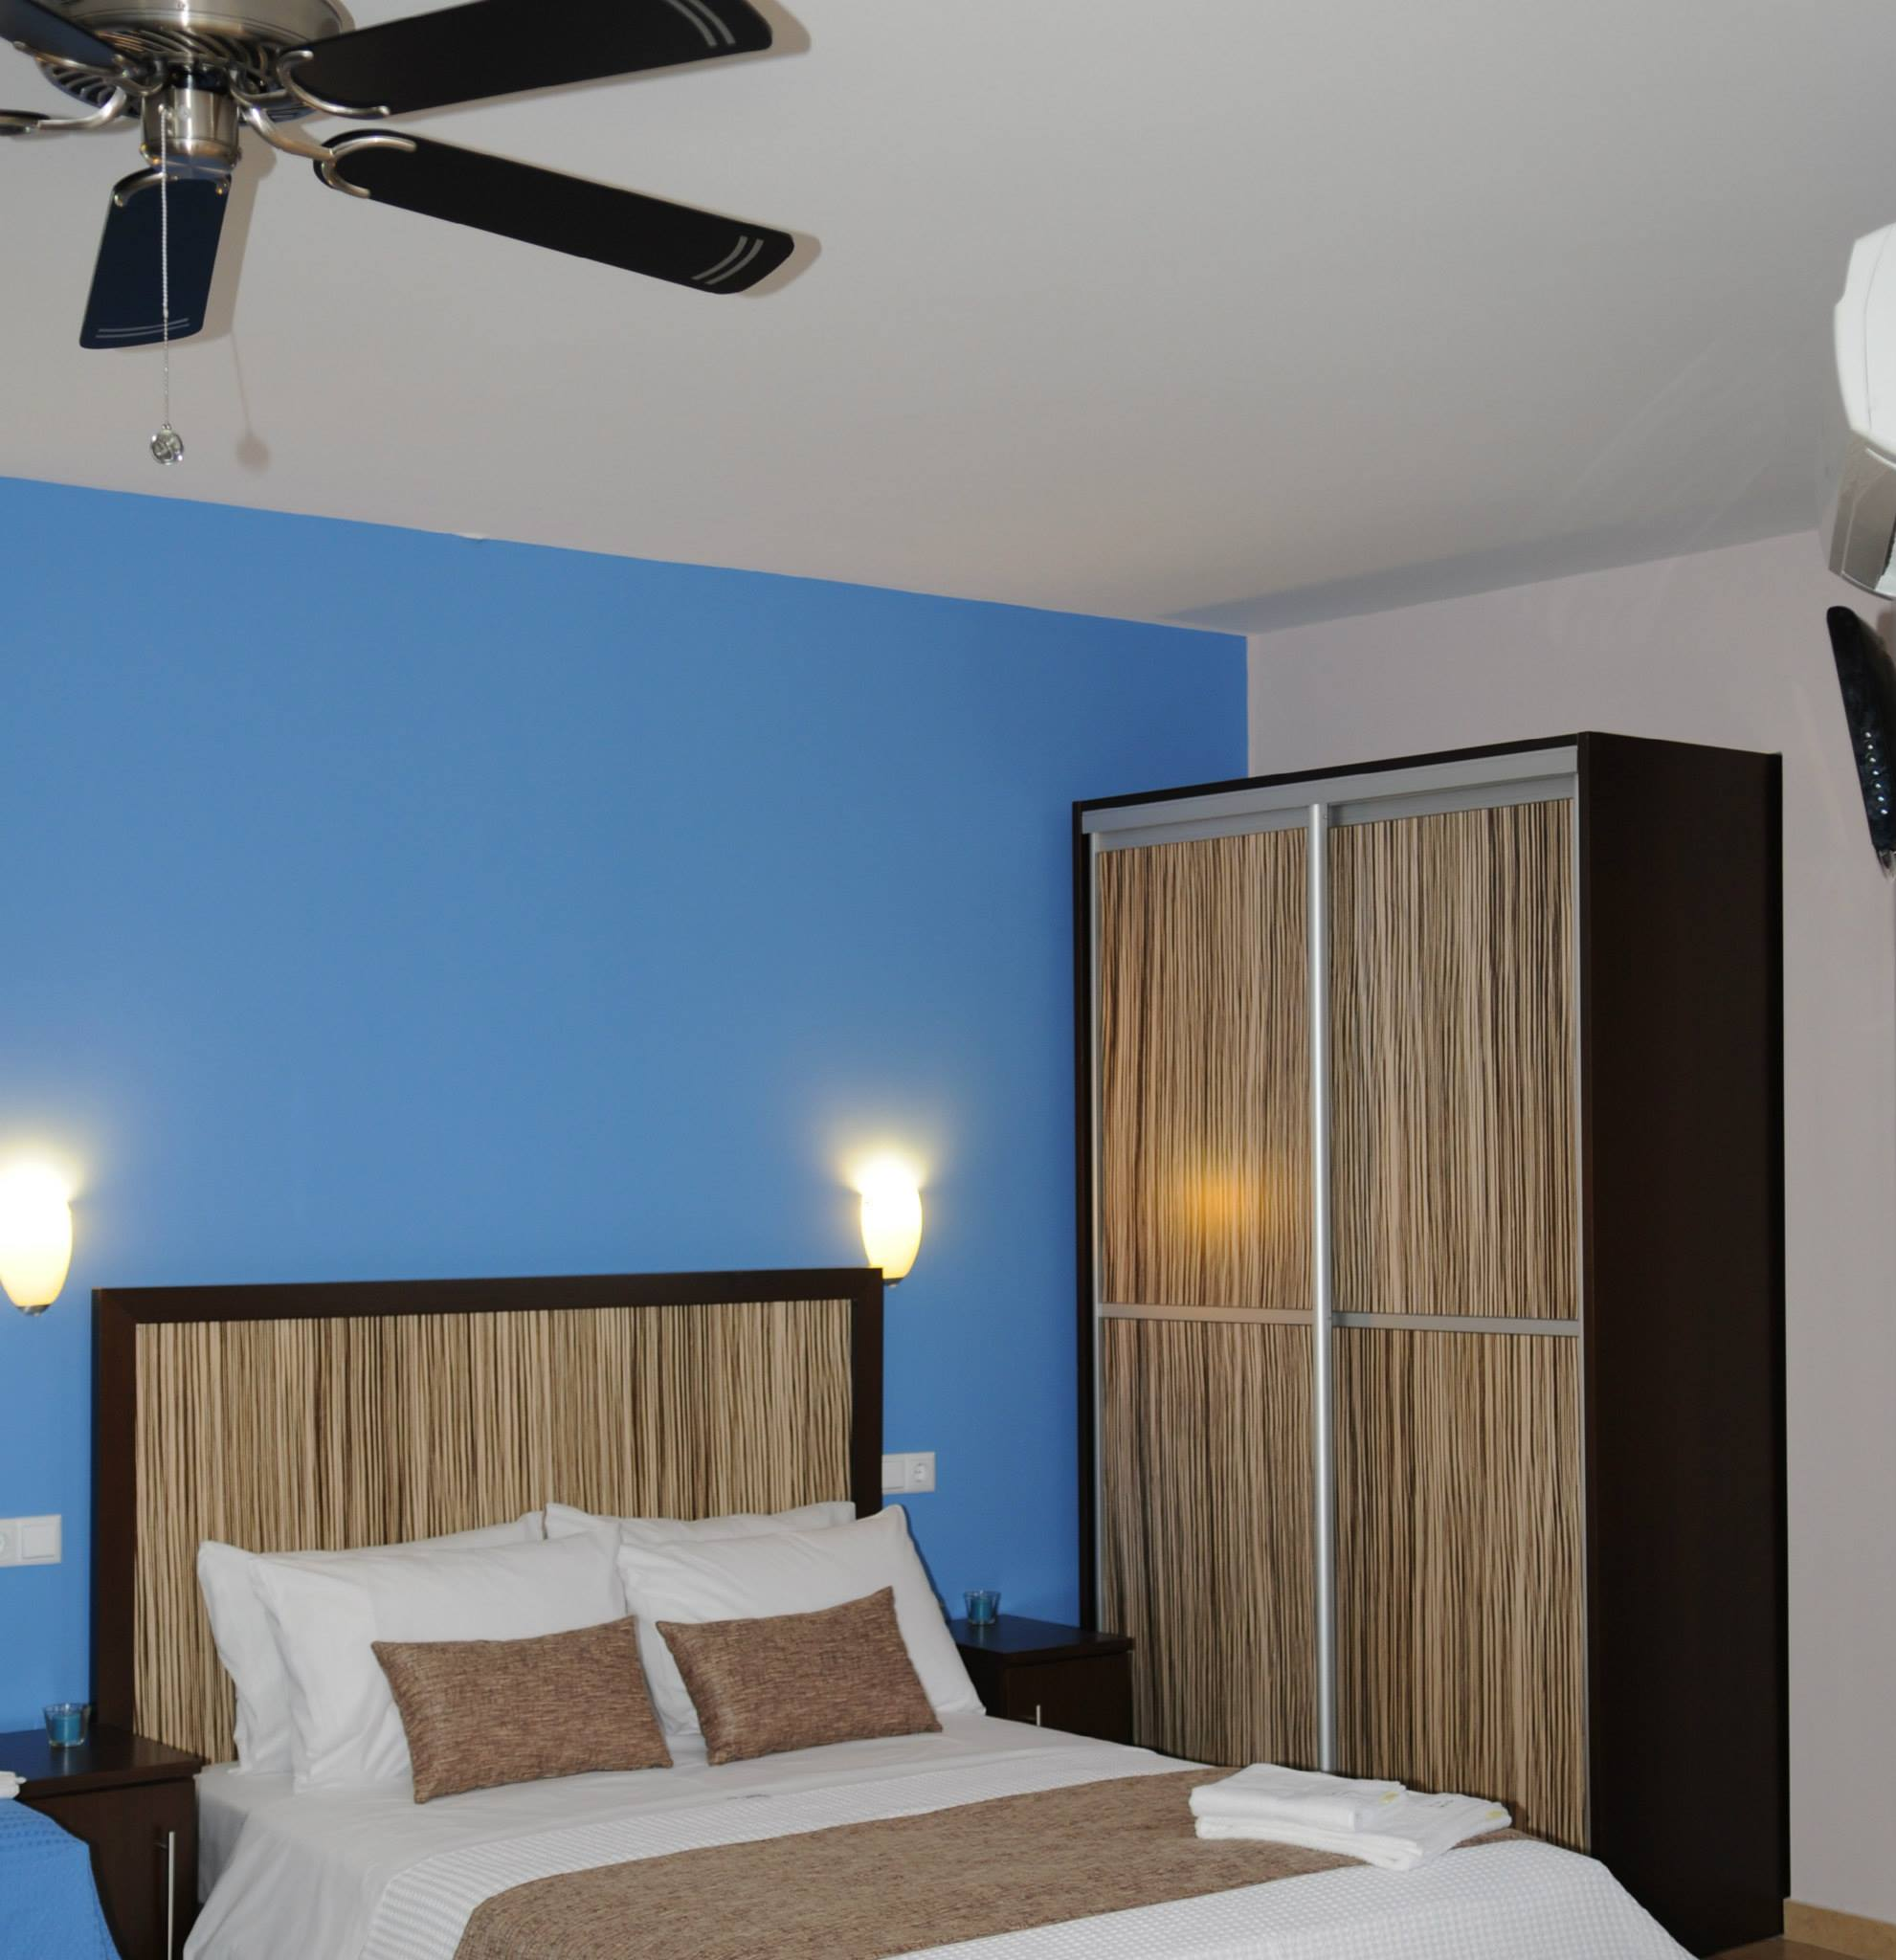 greenotel studios apartments sarti sithonia studio no. 3 (4)